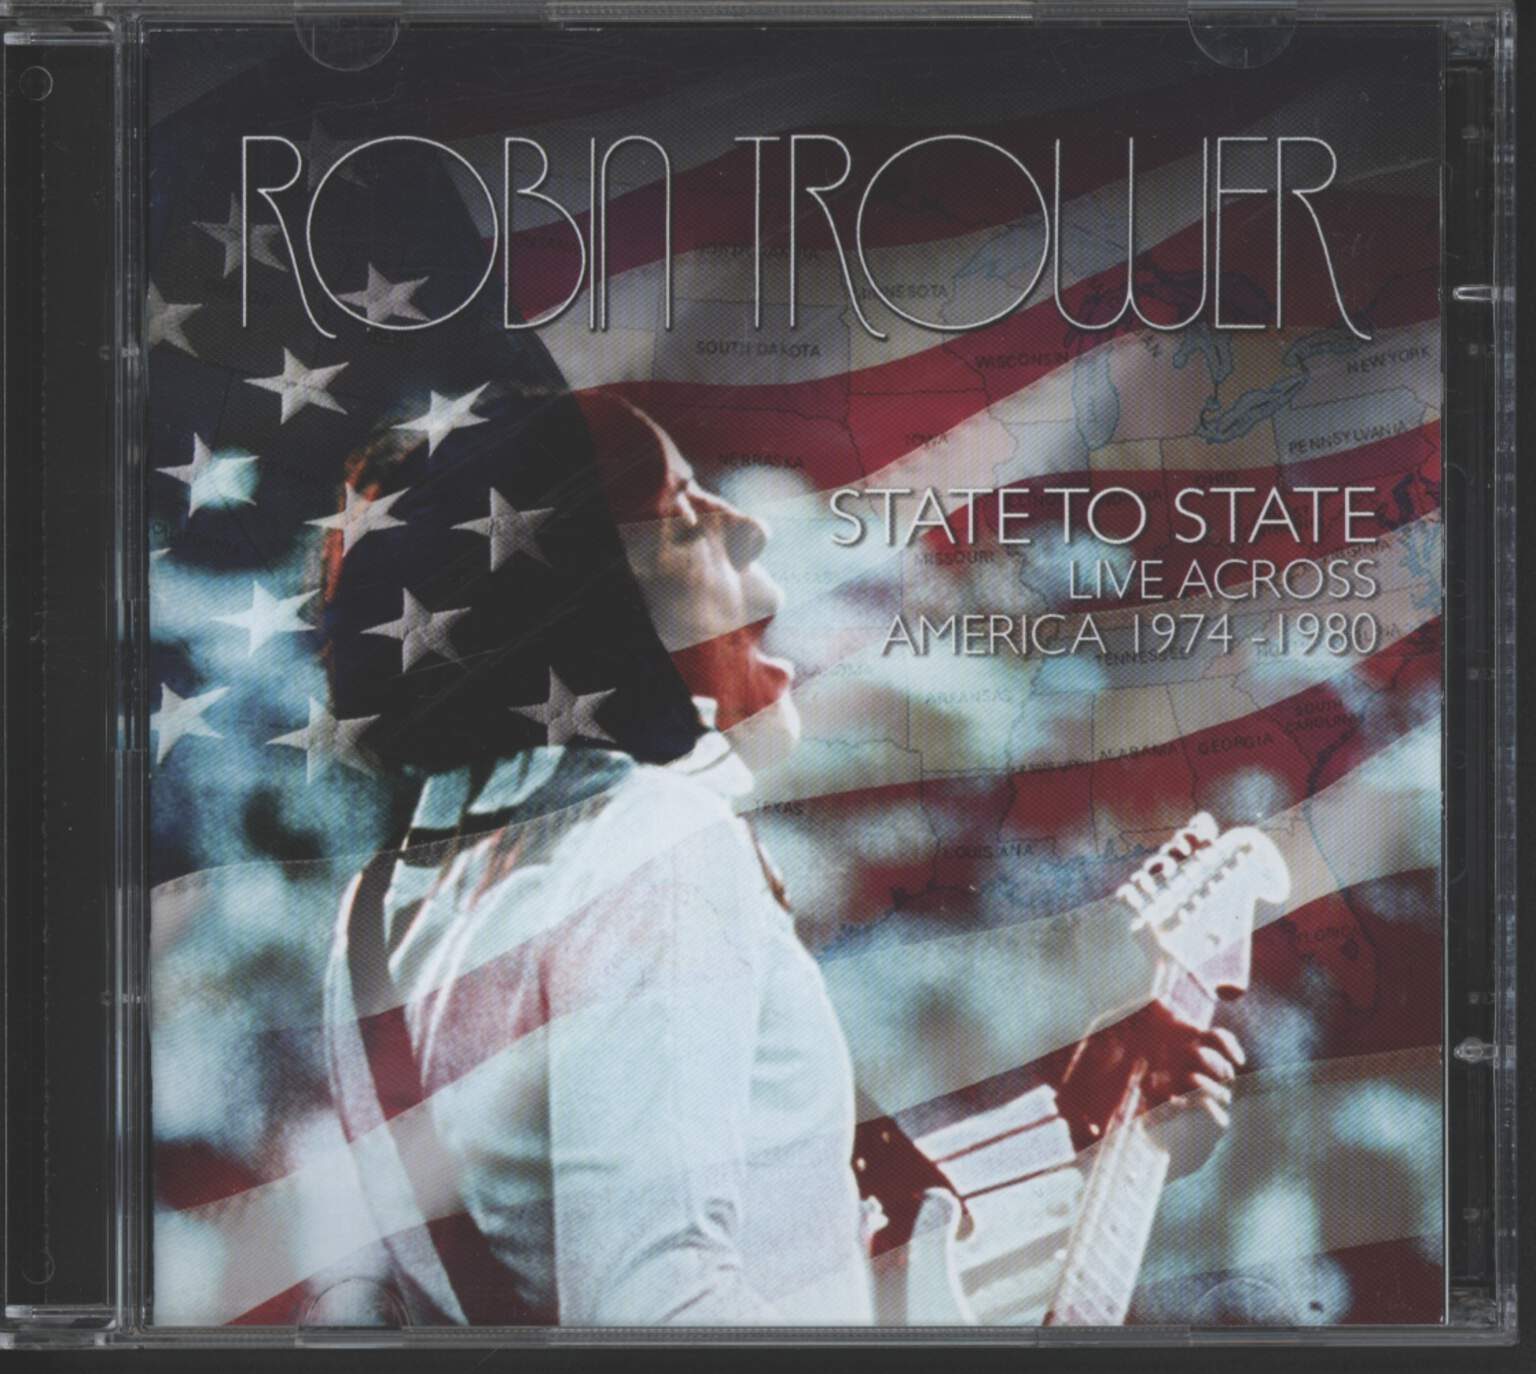 Robin Trower: State To State - Live Across America 1974-1980, CD